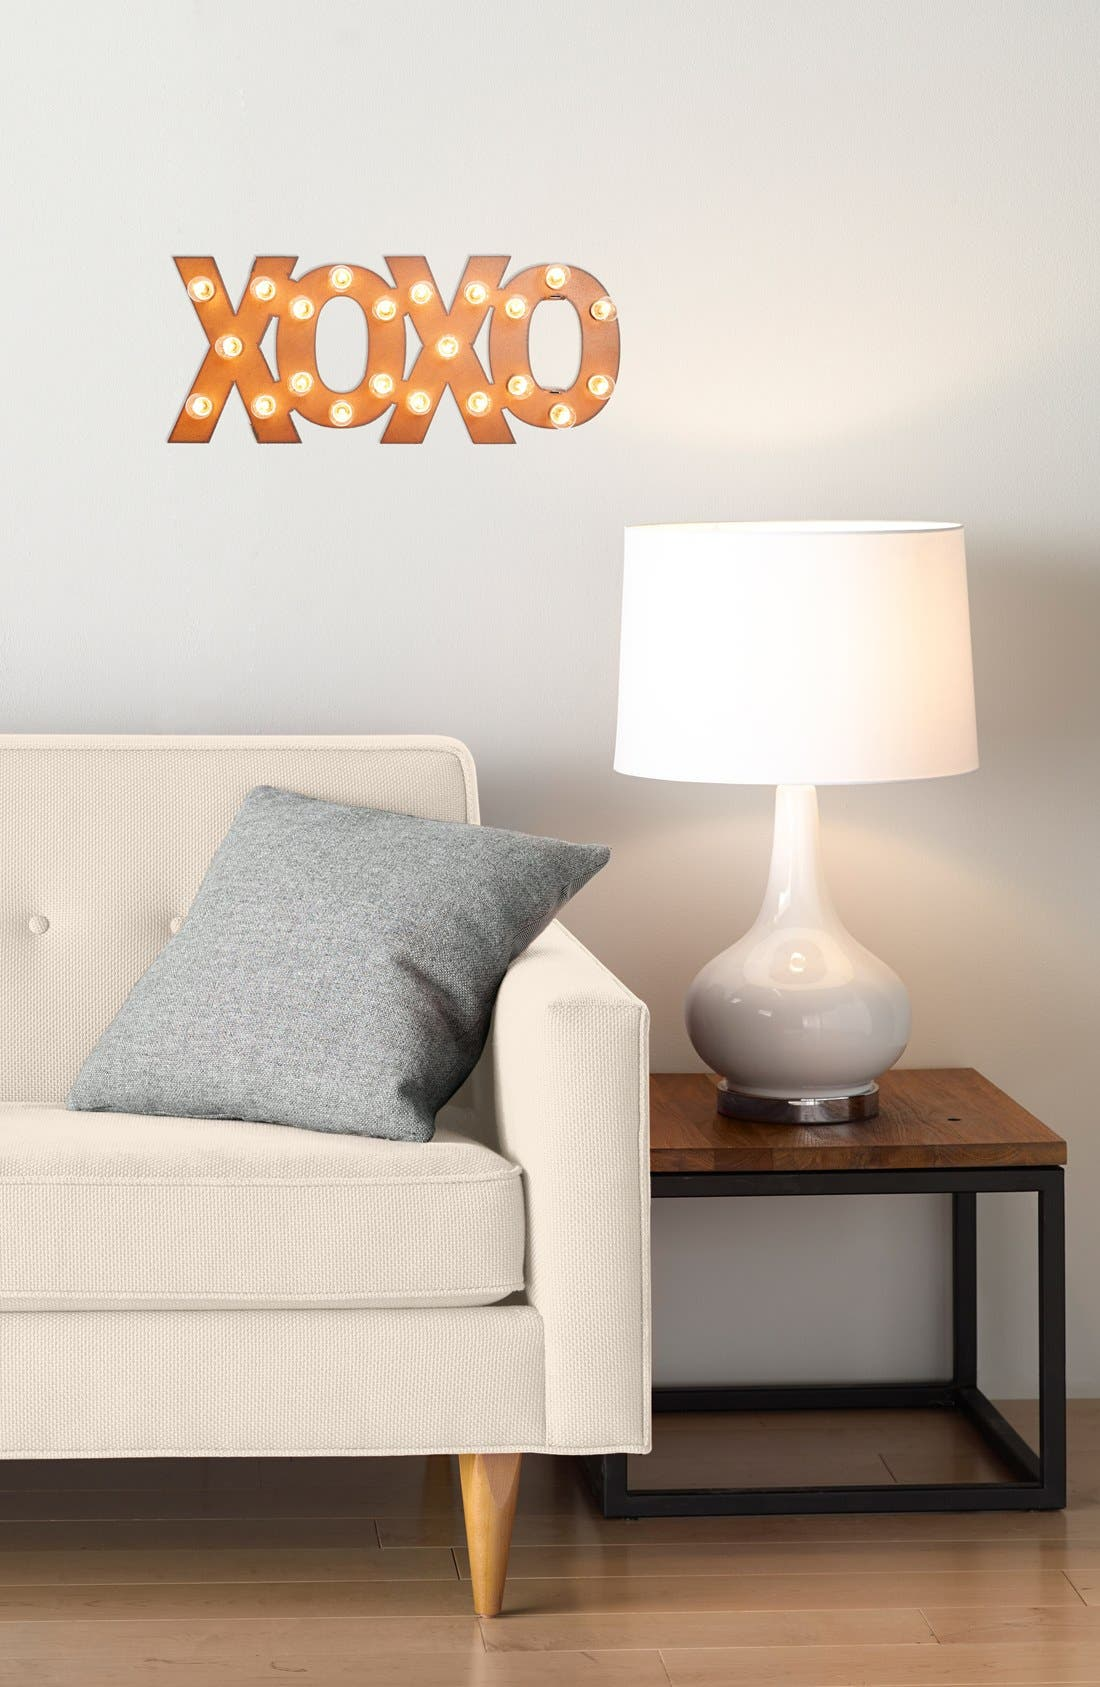 'Marquee Lights - XOXO' Recycled Metal Sign,                             Alternate thumbnail 2, color,                             220